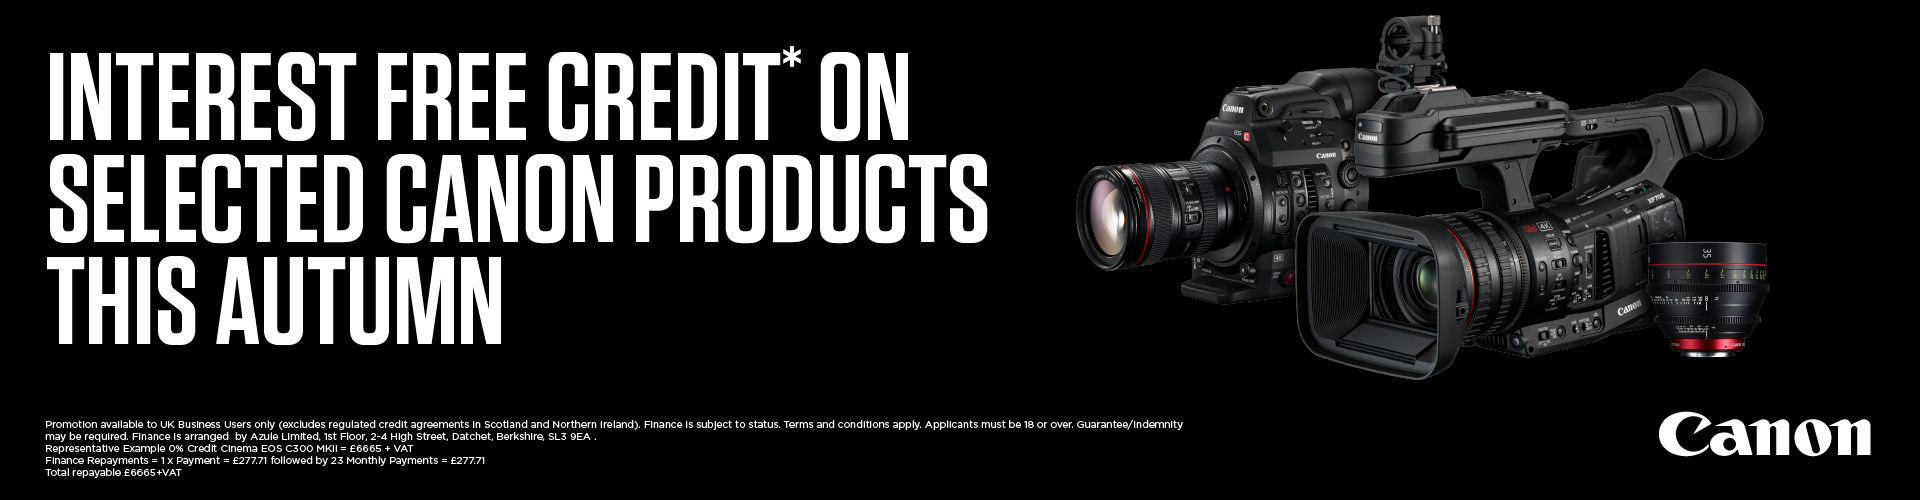 Canon autumn offers